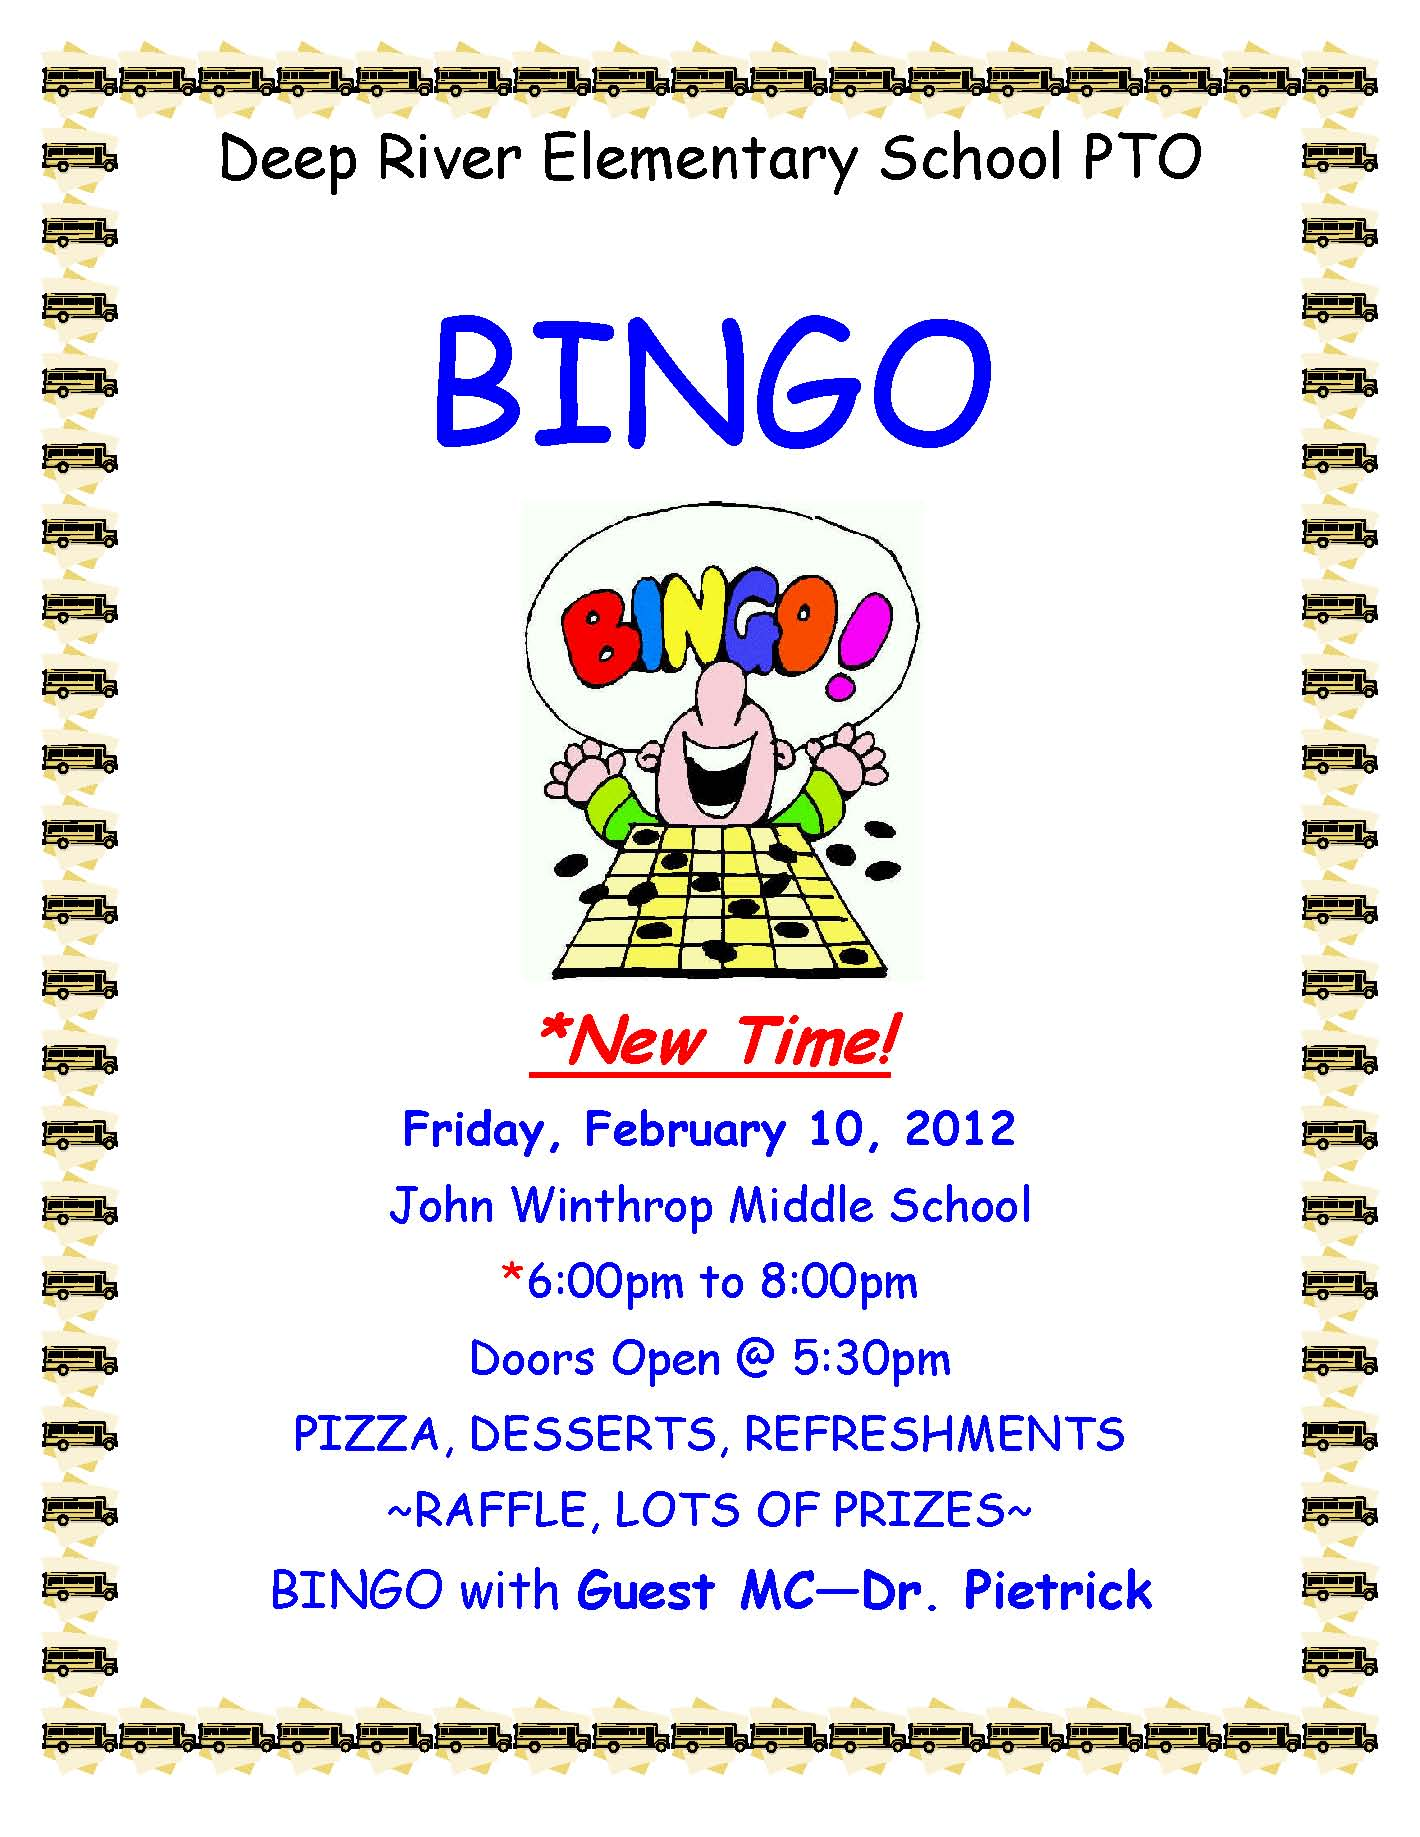 bingo night hosted by deep river elementary school pto